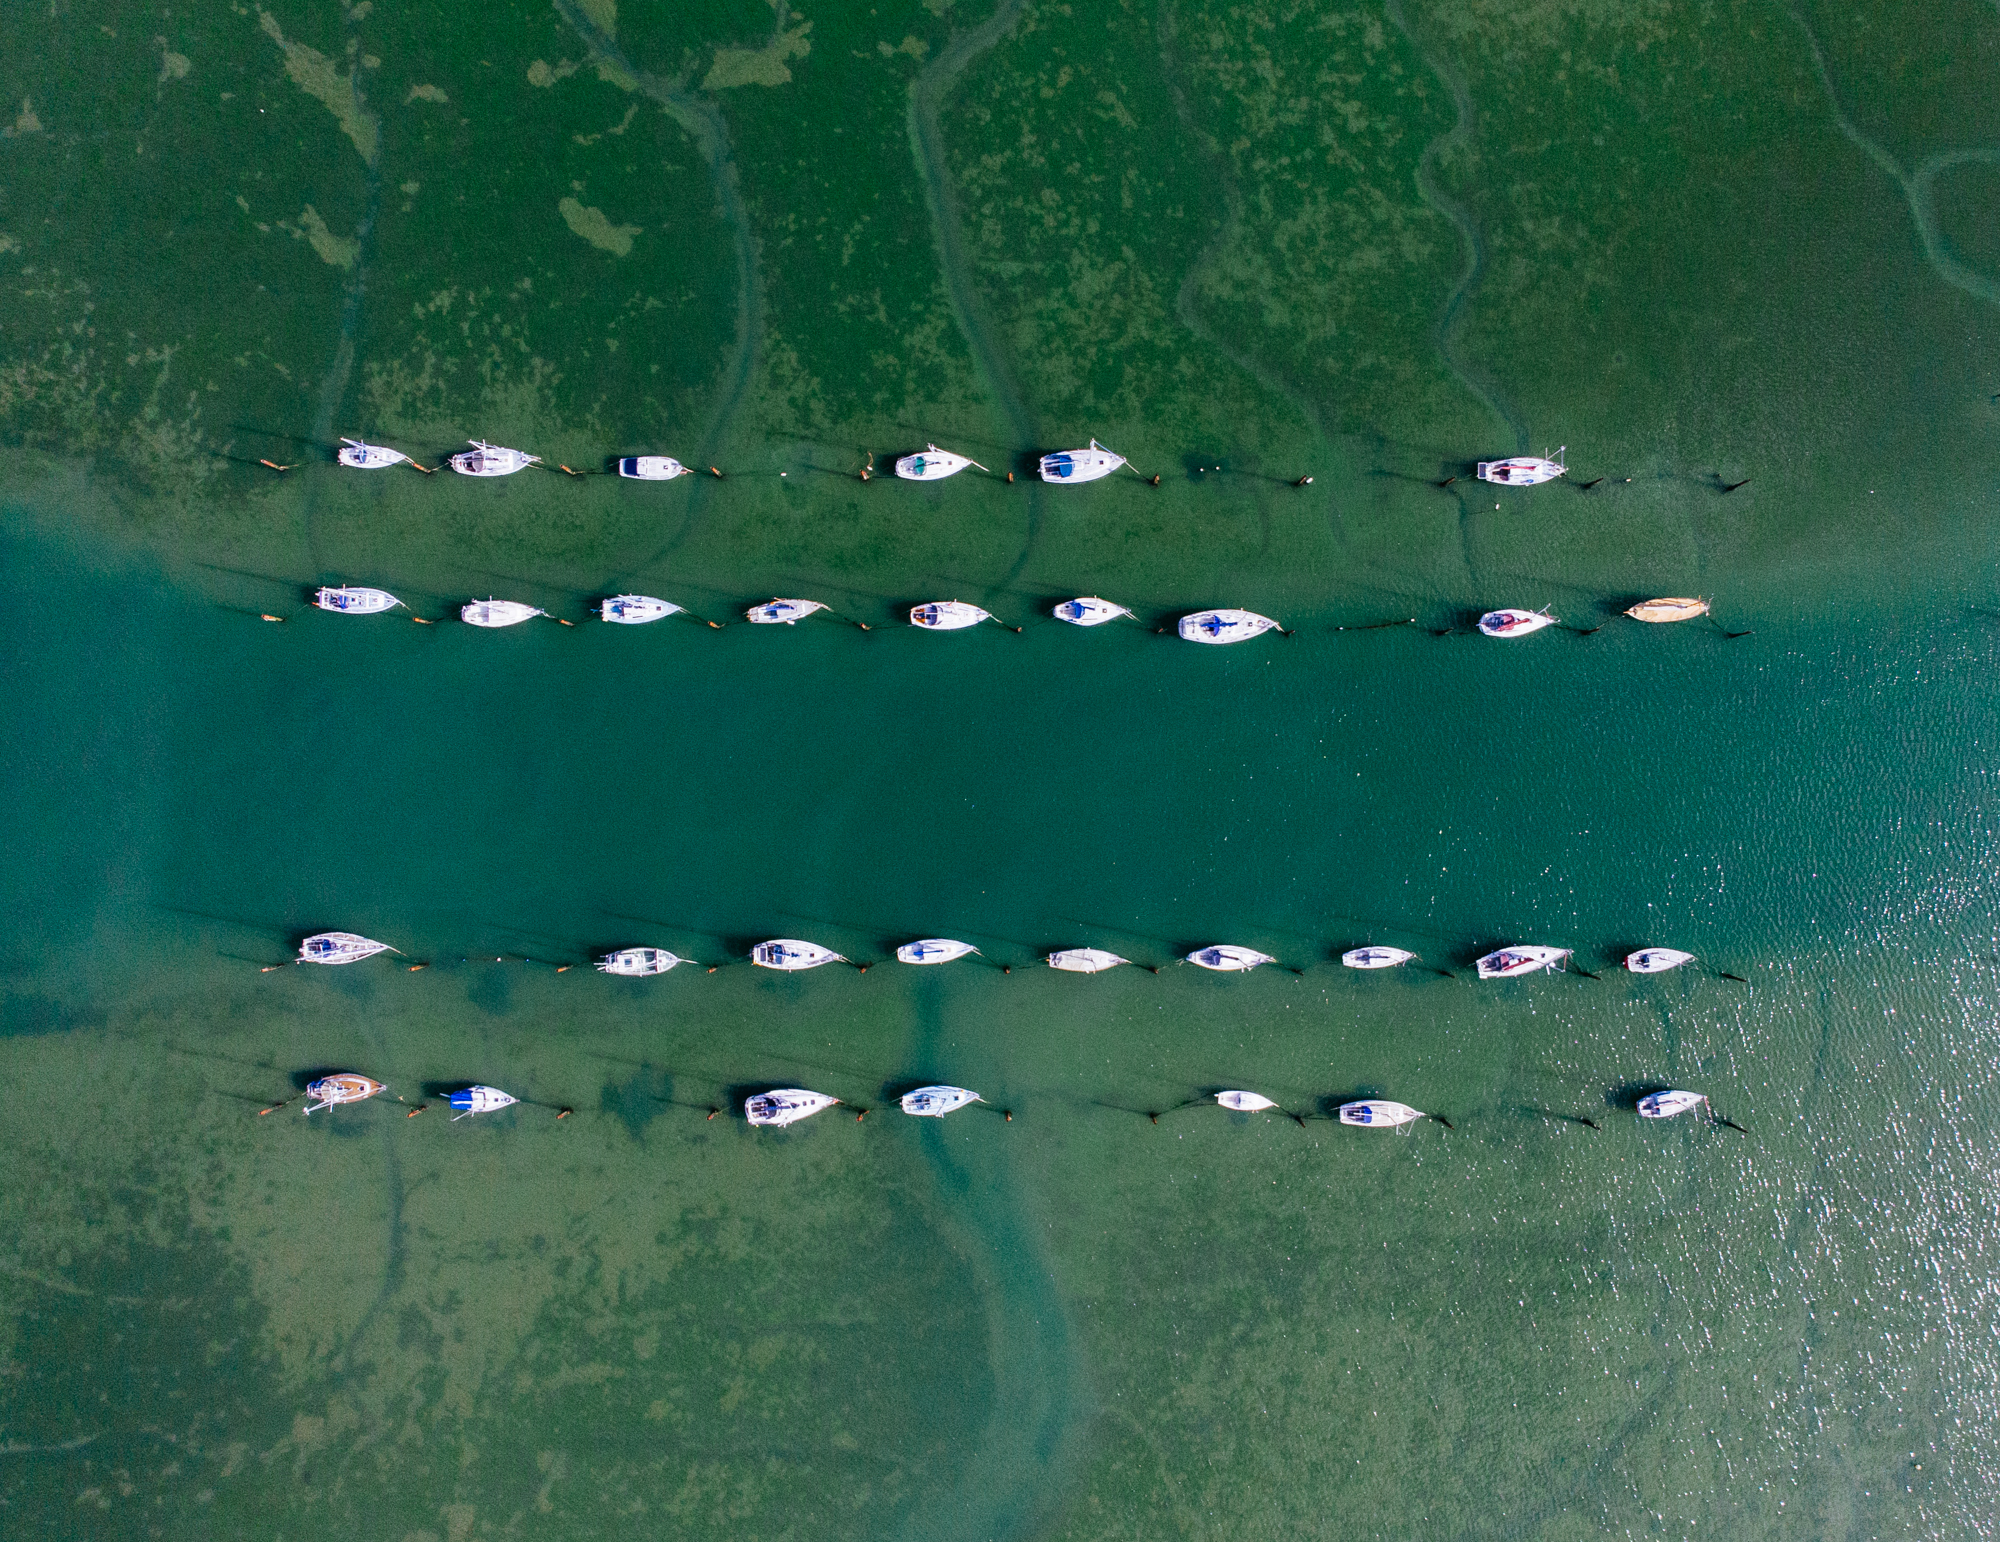 Row of Boats - © Brewmage